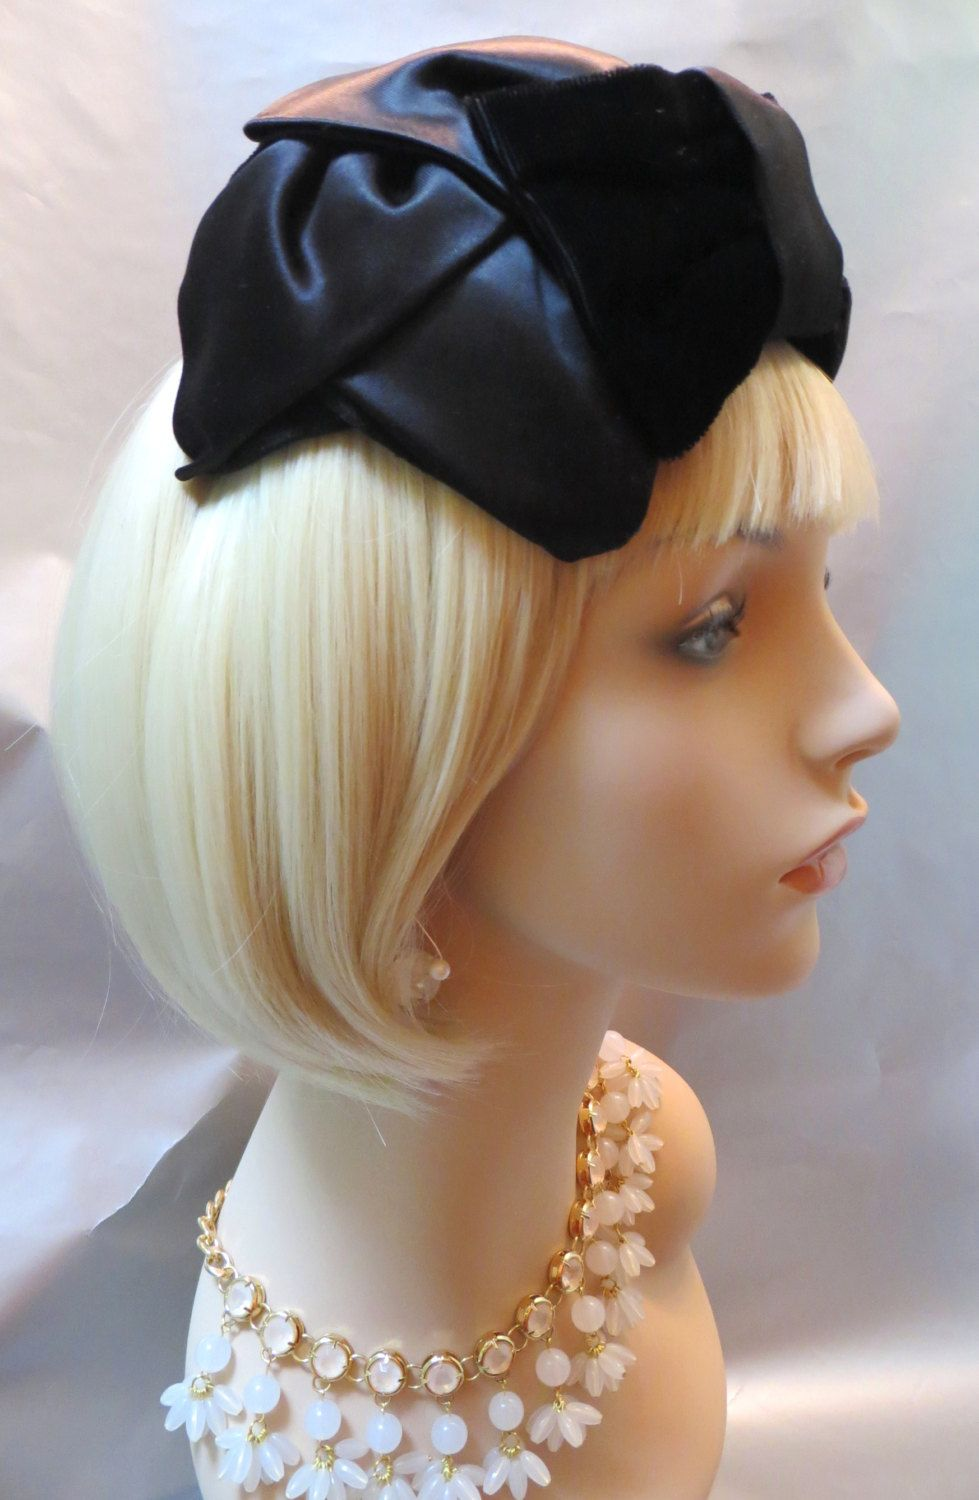 fb501b7a9ed Ladies Beautiful Black Velvet Big Bow Satin Half Hat